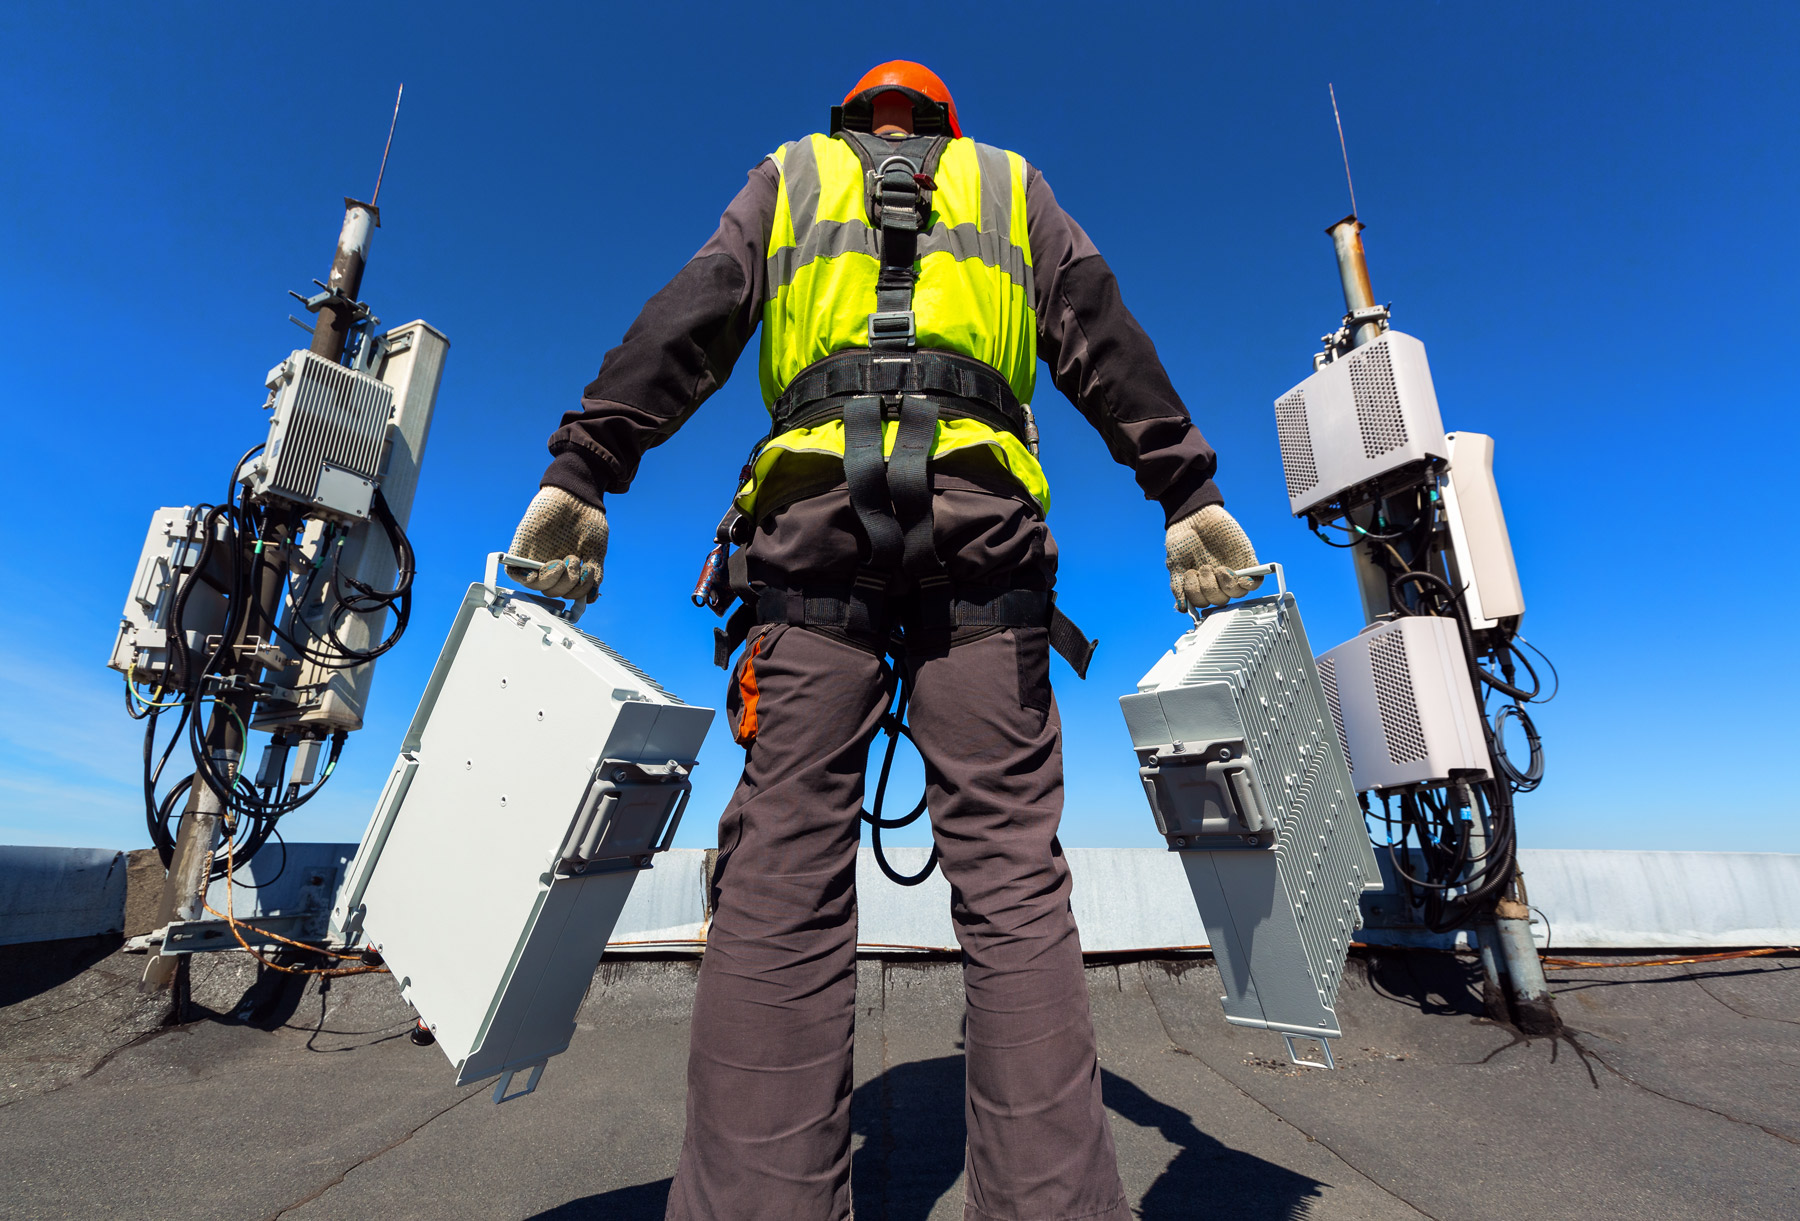 expert ready to install devices on rooftop